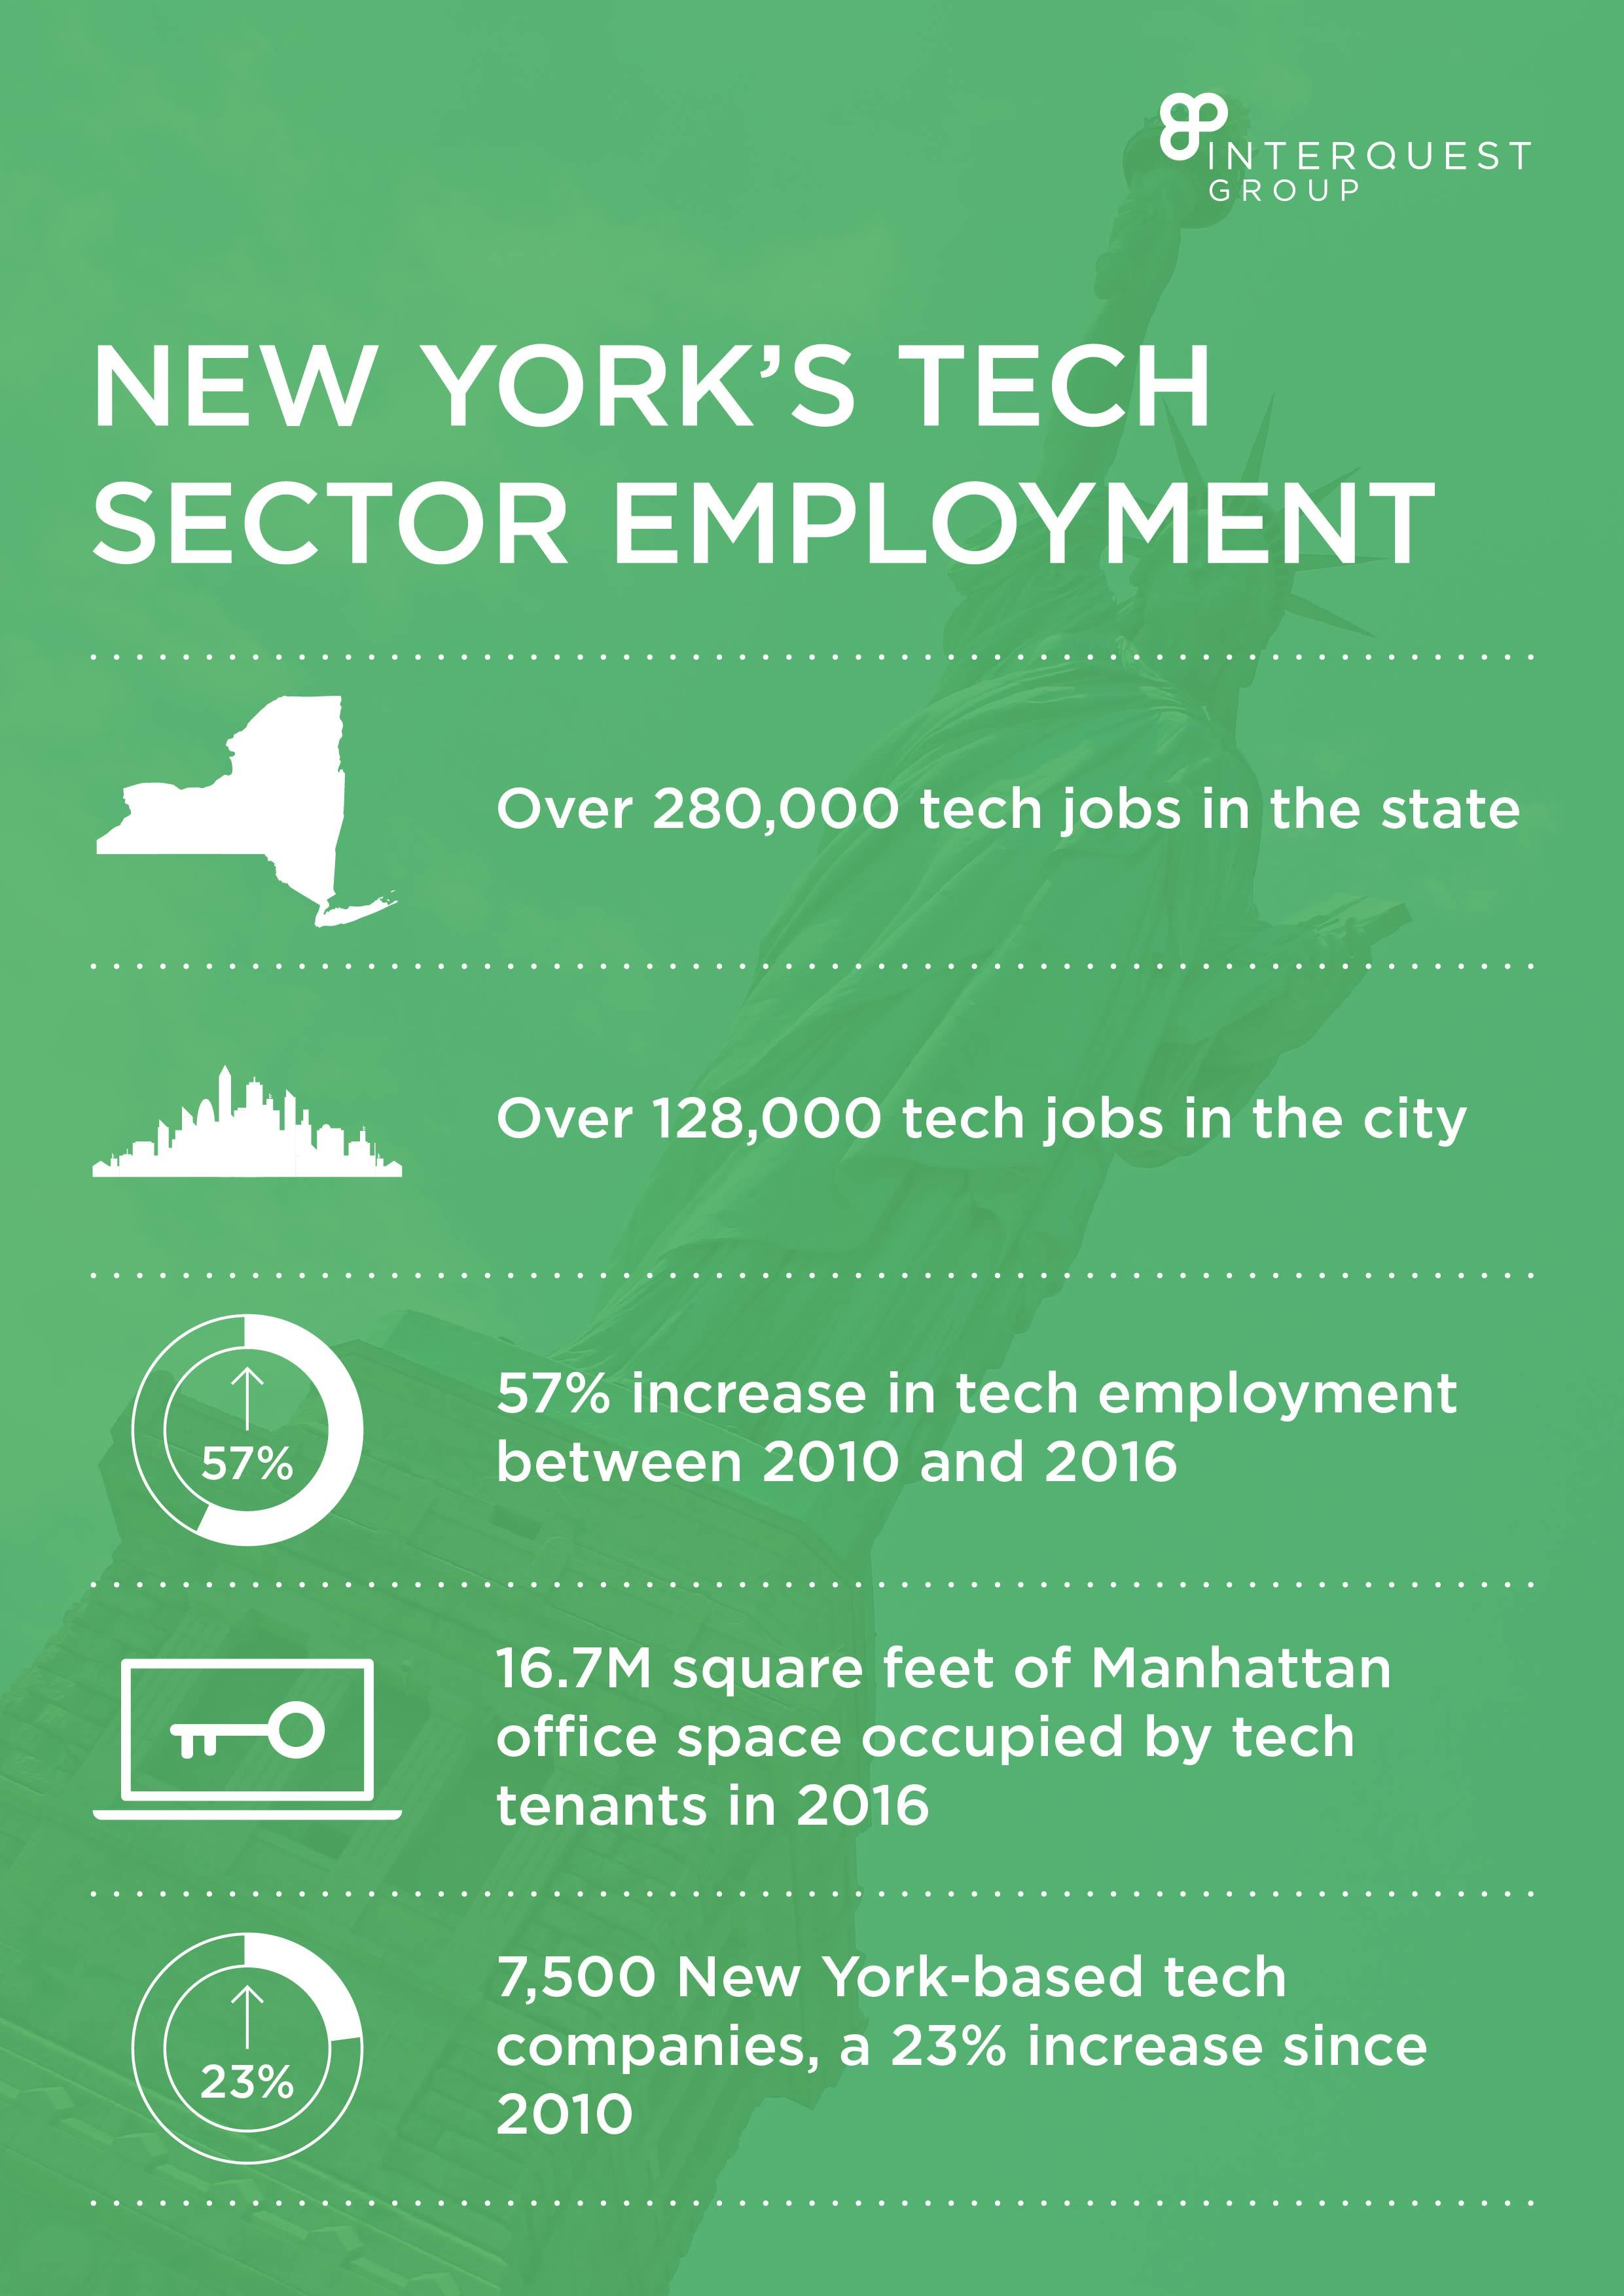 New York's Tech Sector Employment Growth